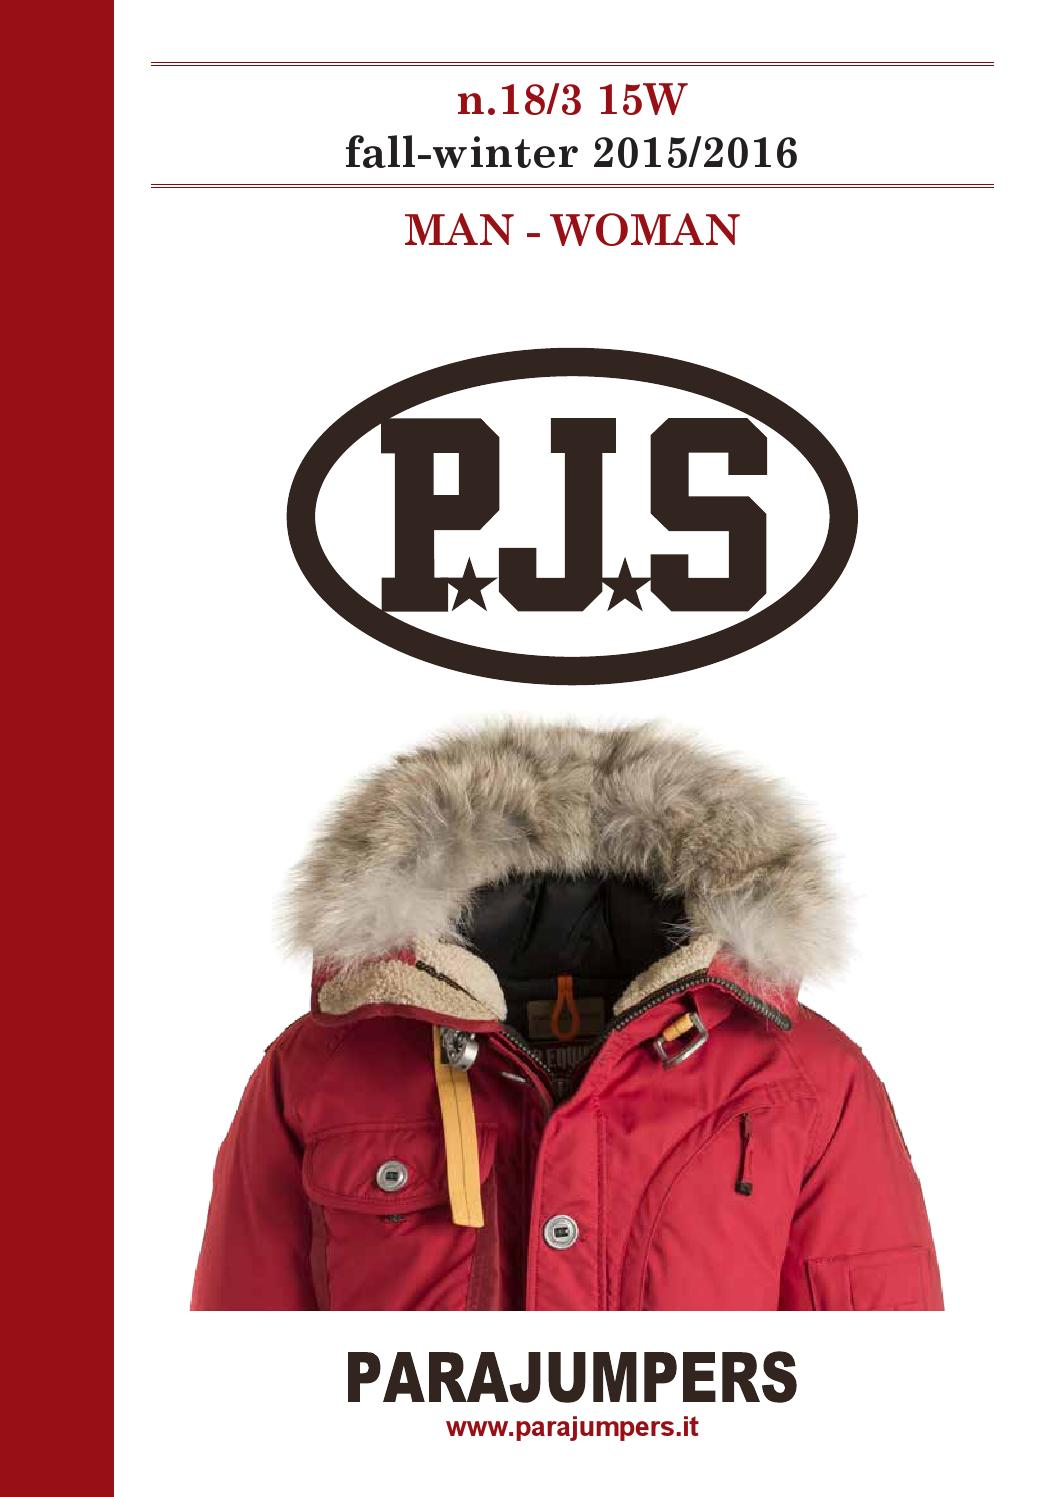 parajumpers it